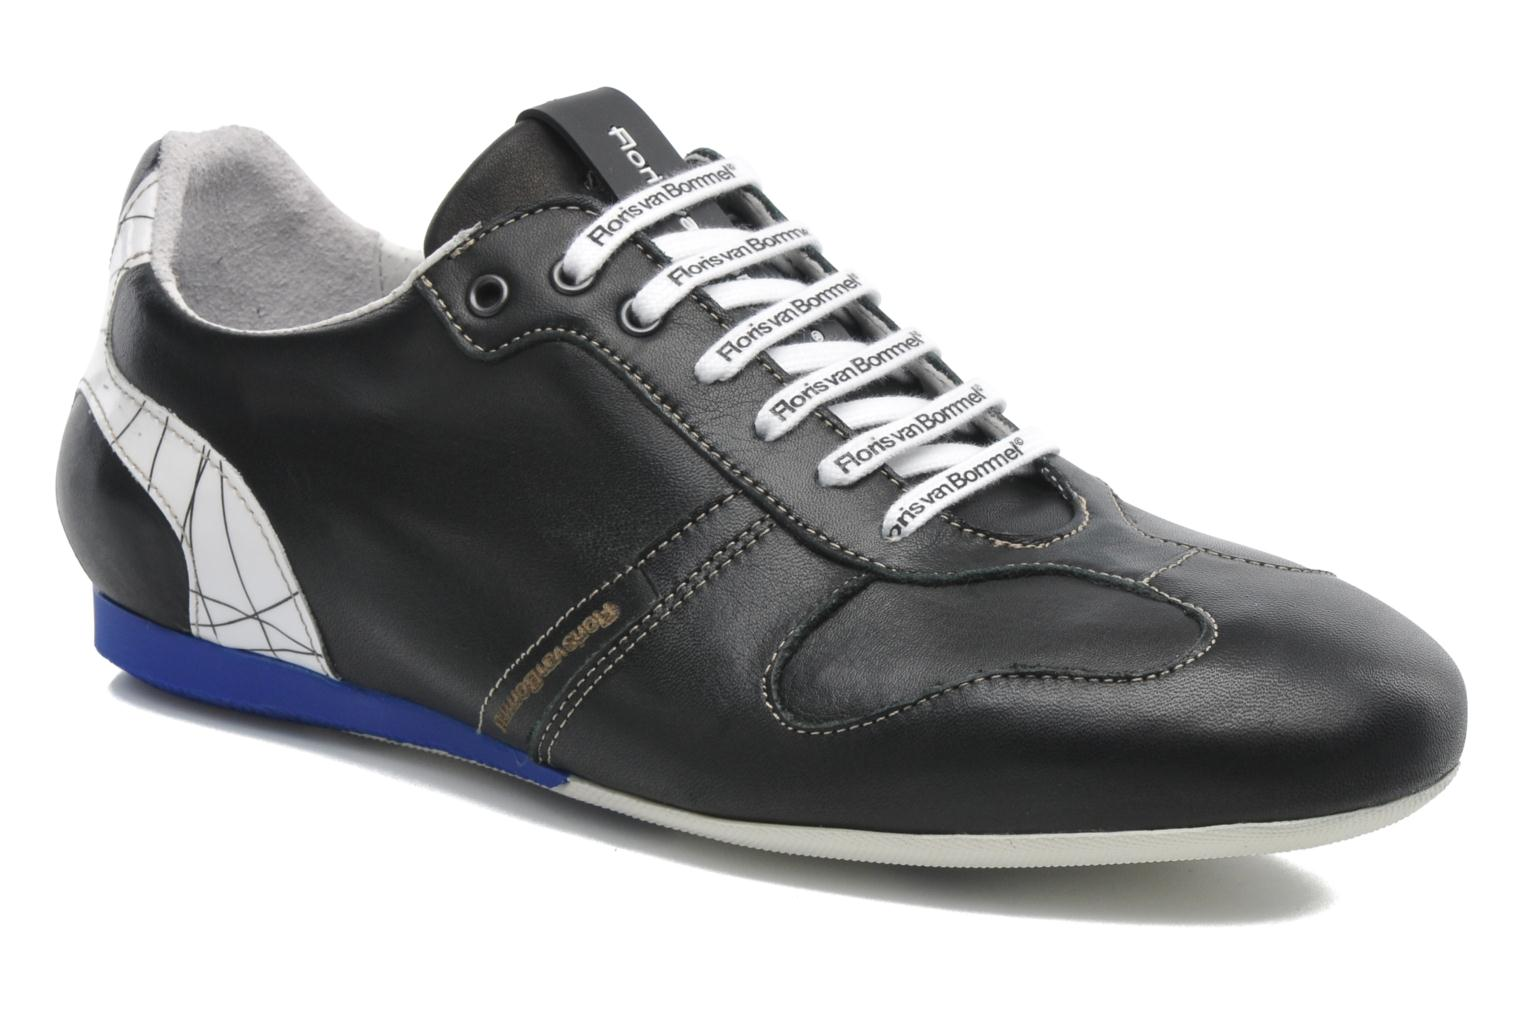 Sneakers Asher 16133 by Floris Van Bommel